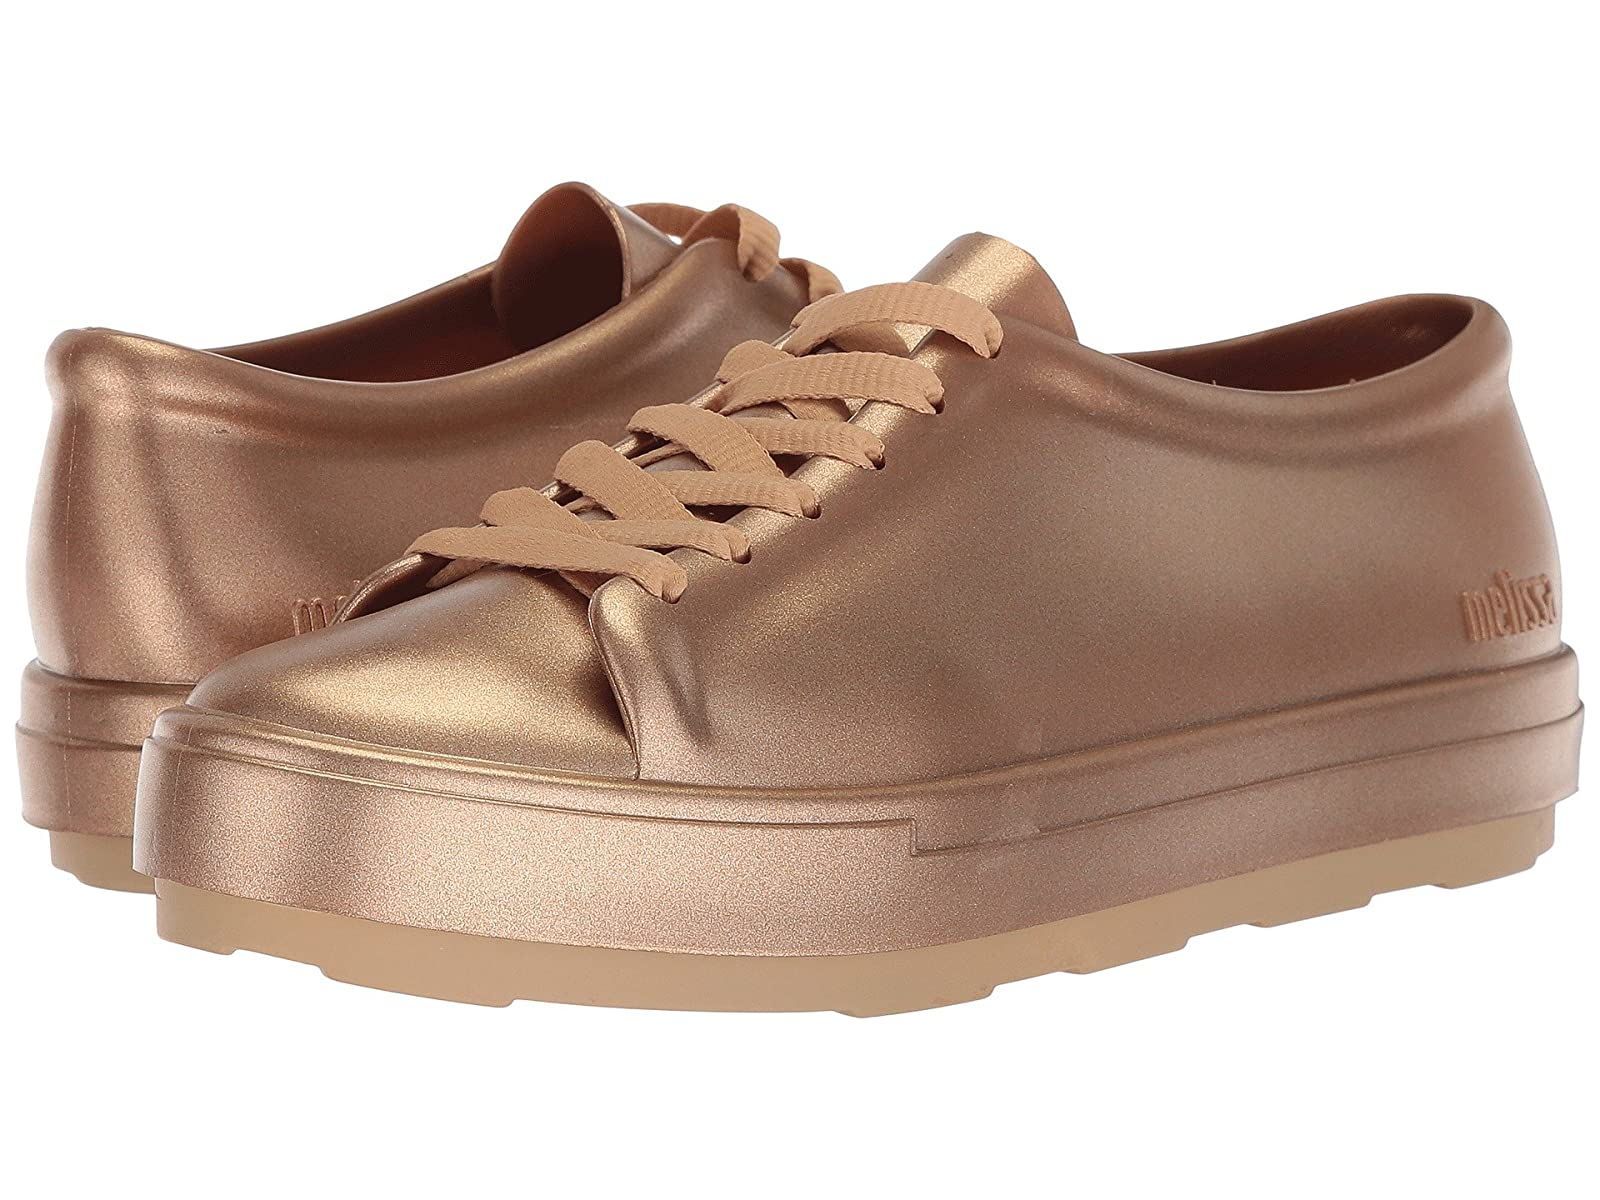 Melissa Shoes Be ShineCheap and distinctive eye-catching shoes